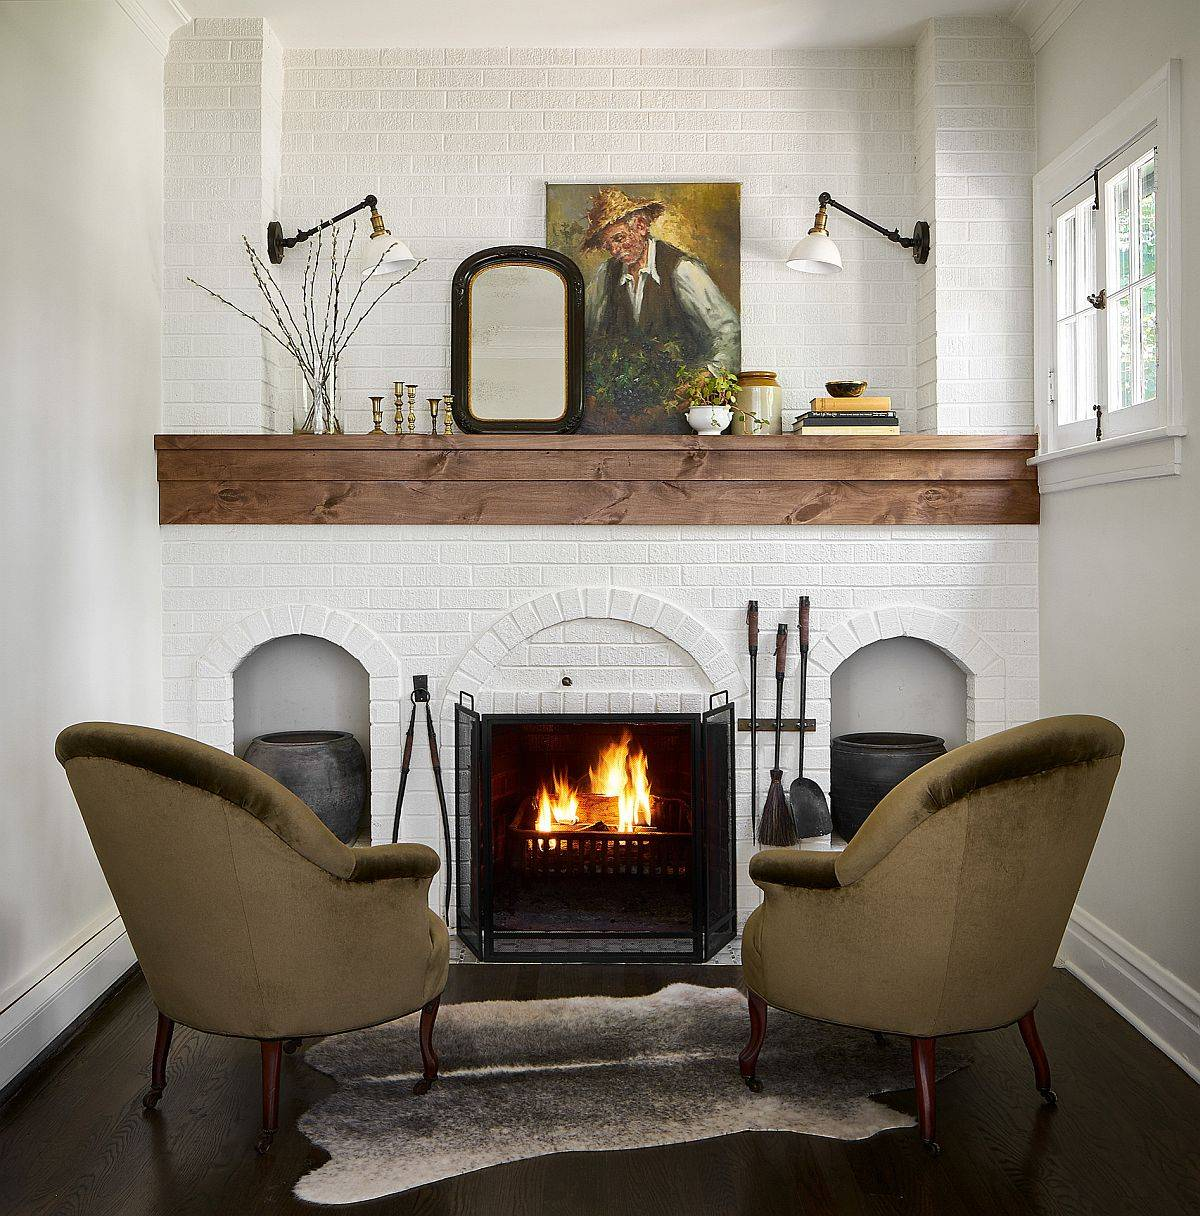 Fireplace becomes the focal point of this small English cottage style living room